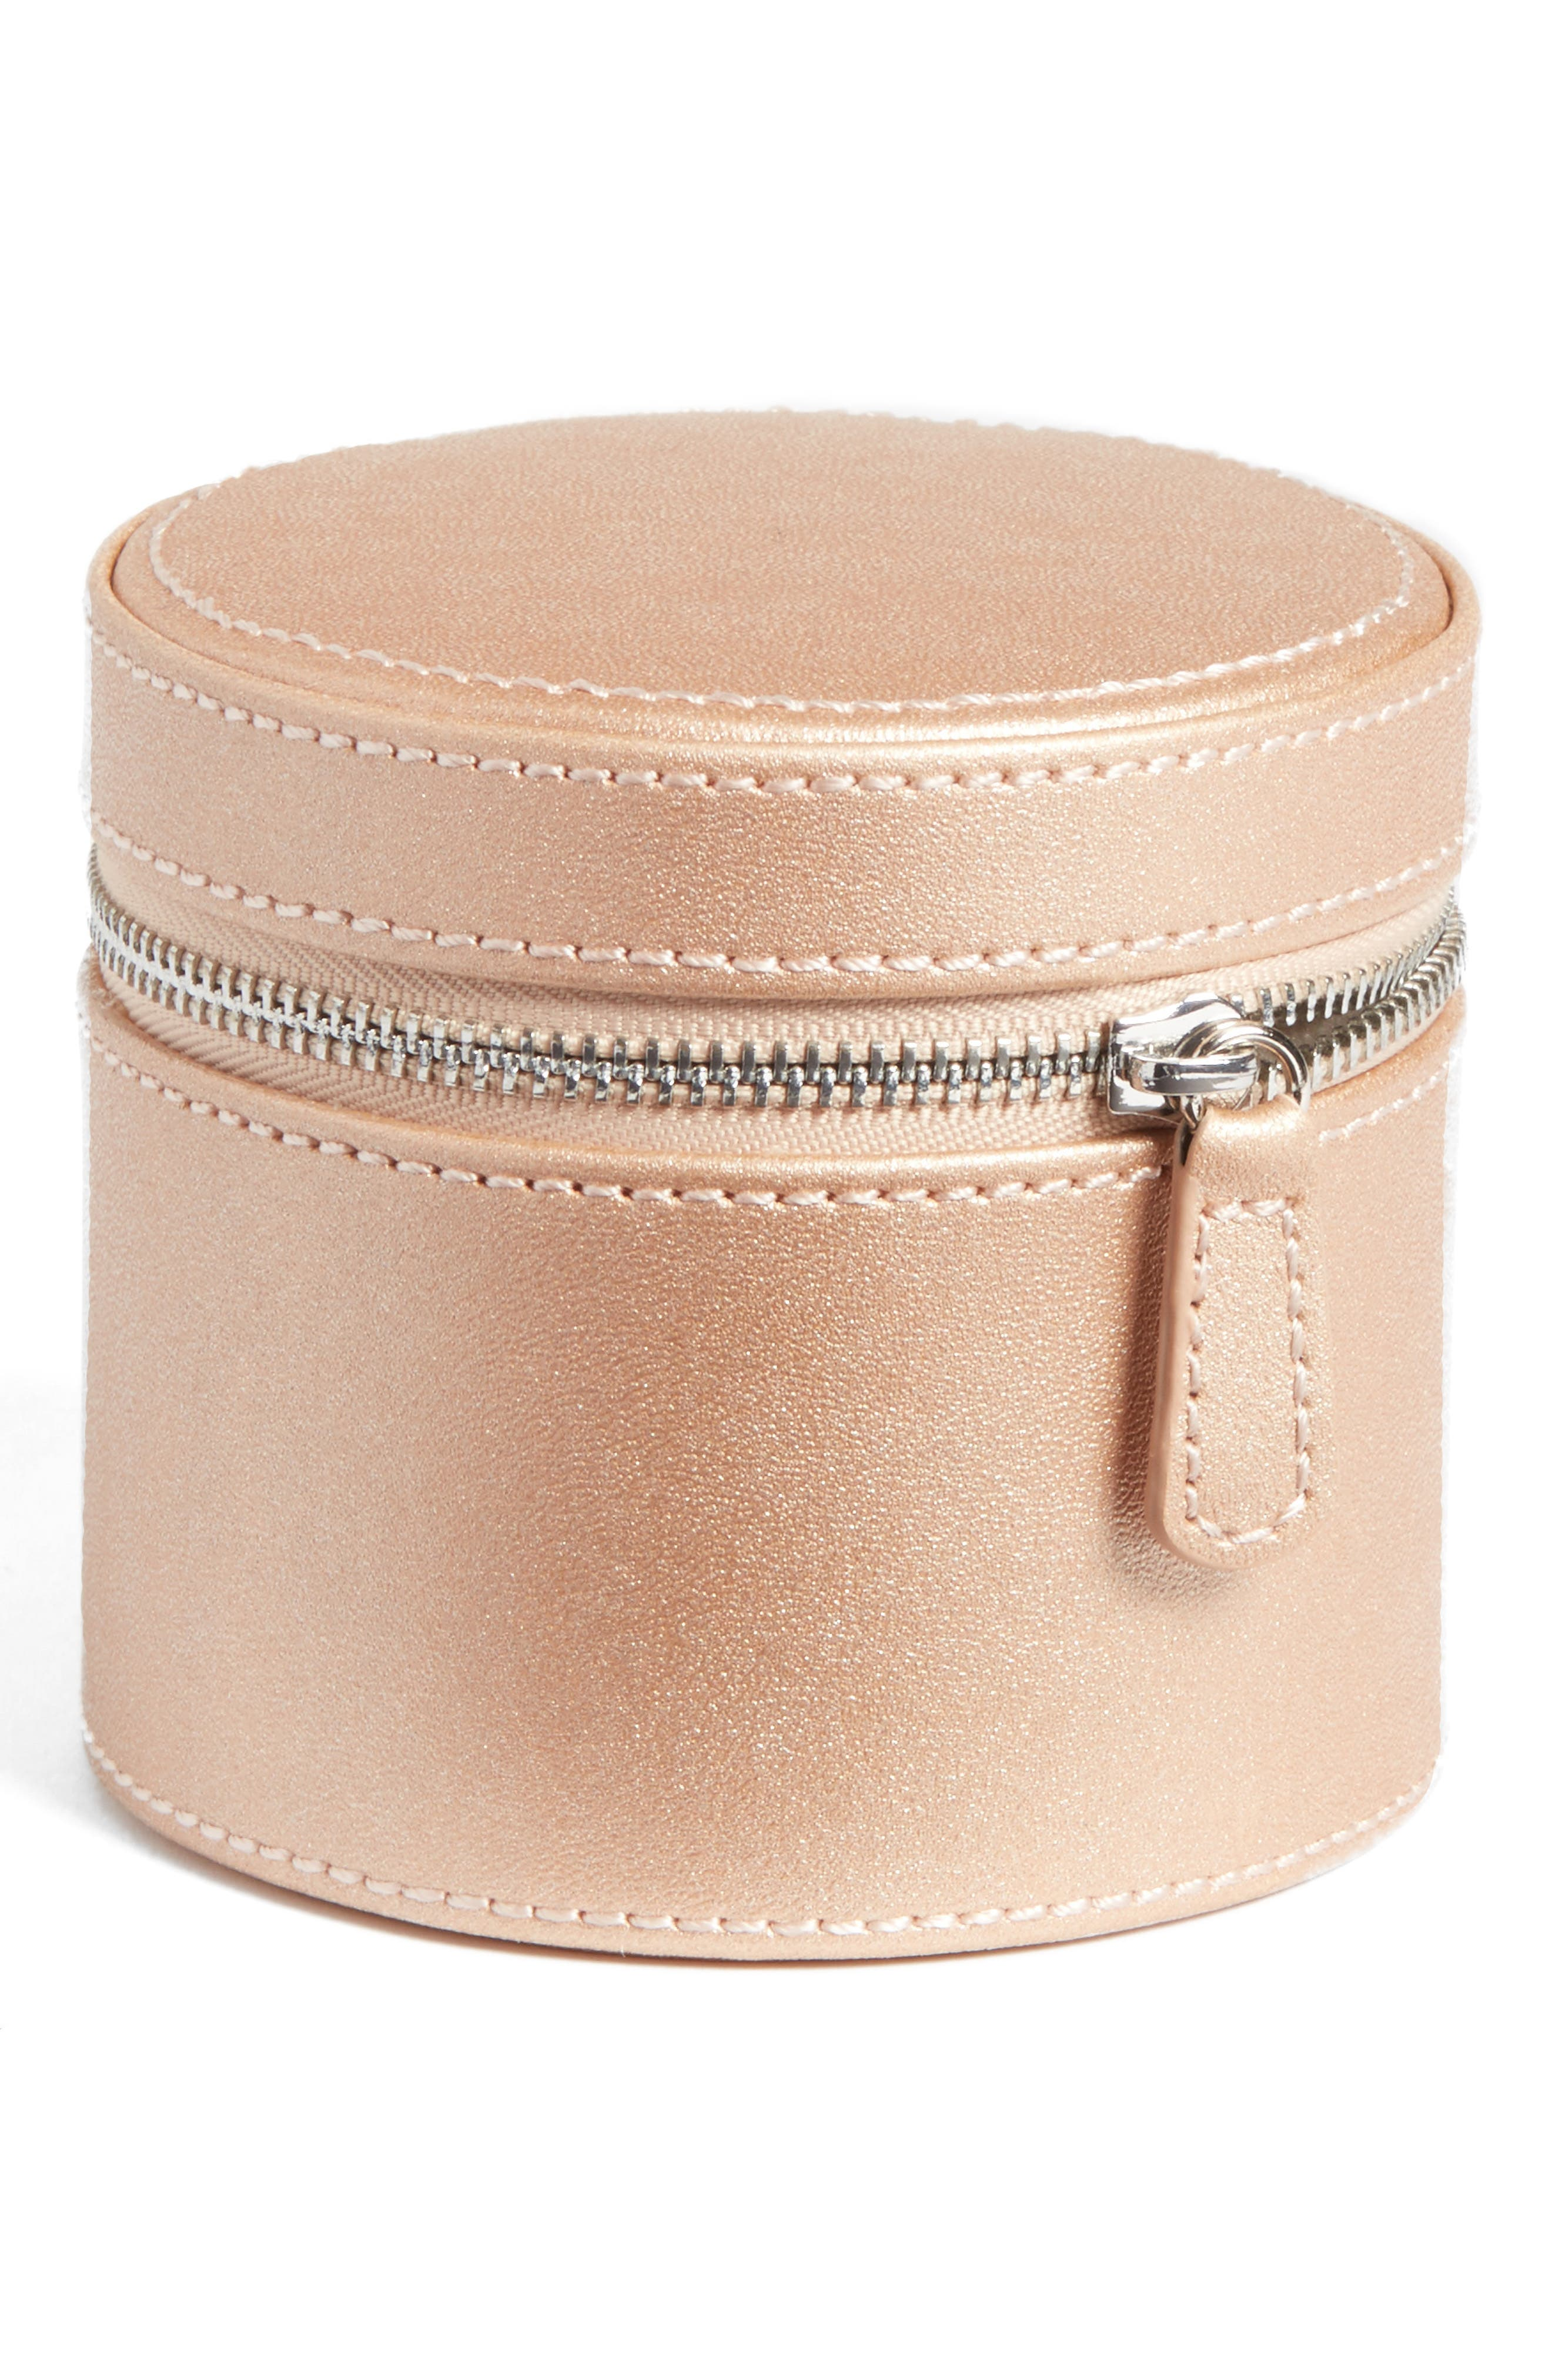 Small Round Zippered Jewelry Case,                             Main thumbnail 3, color,